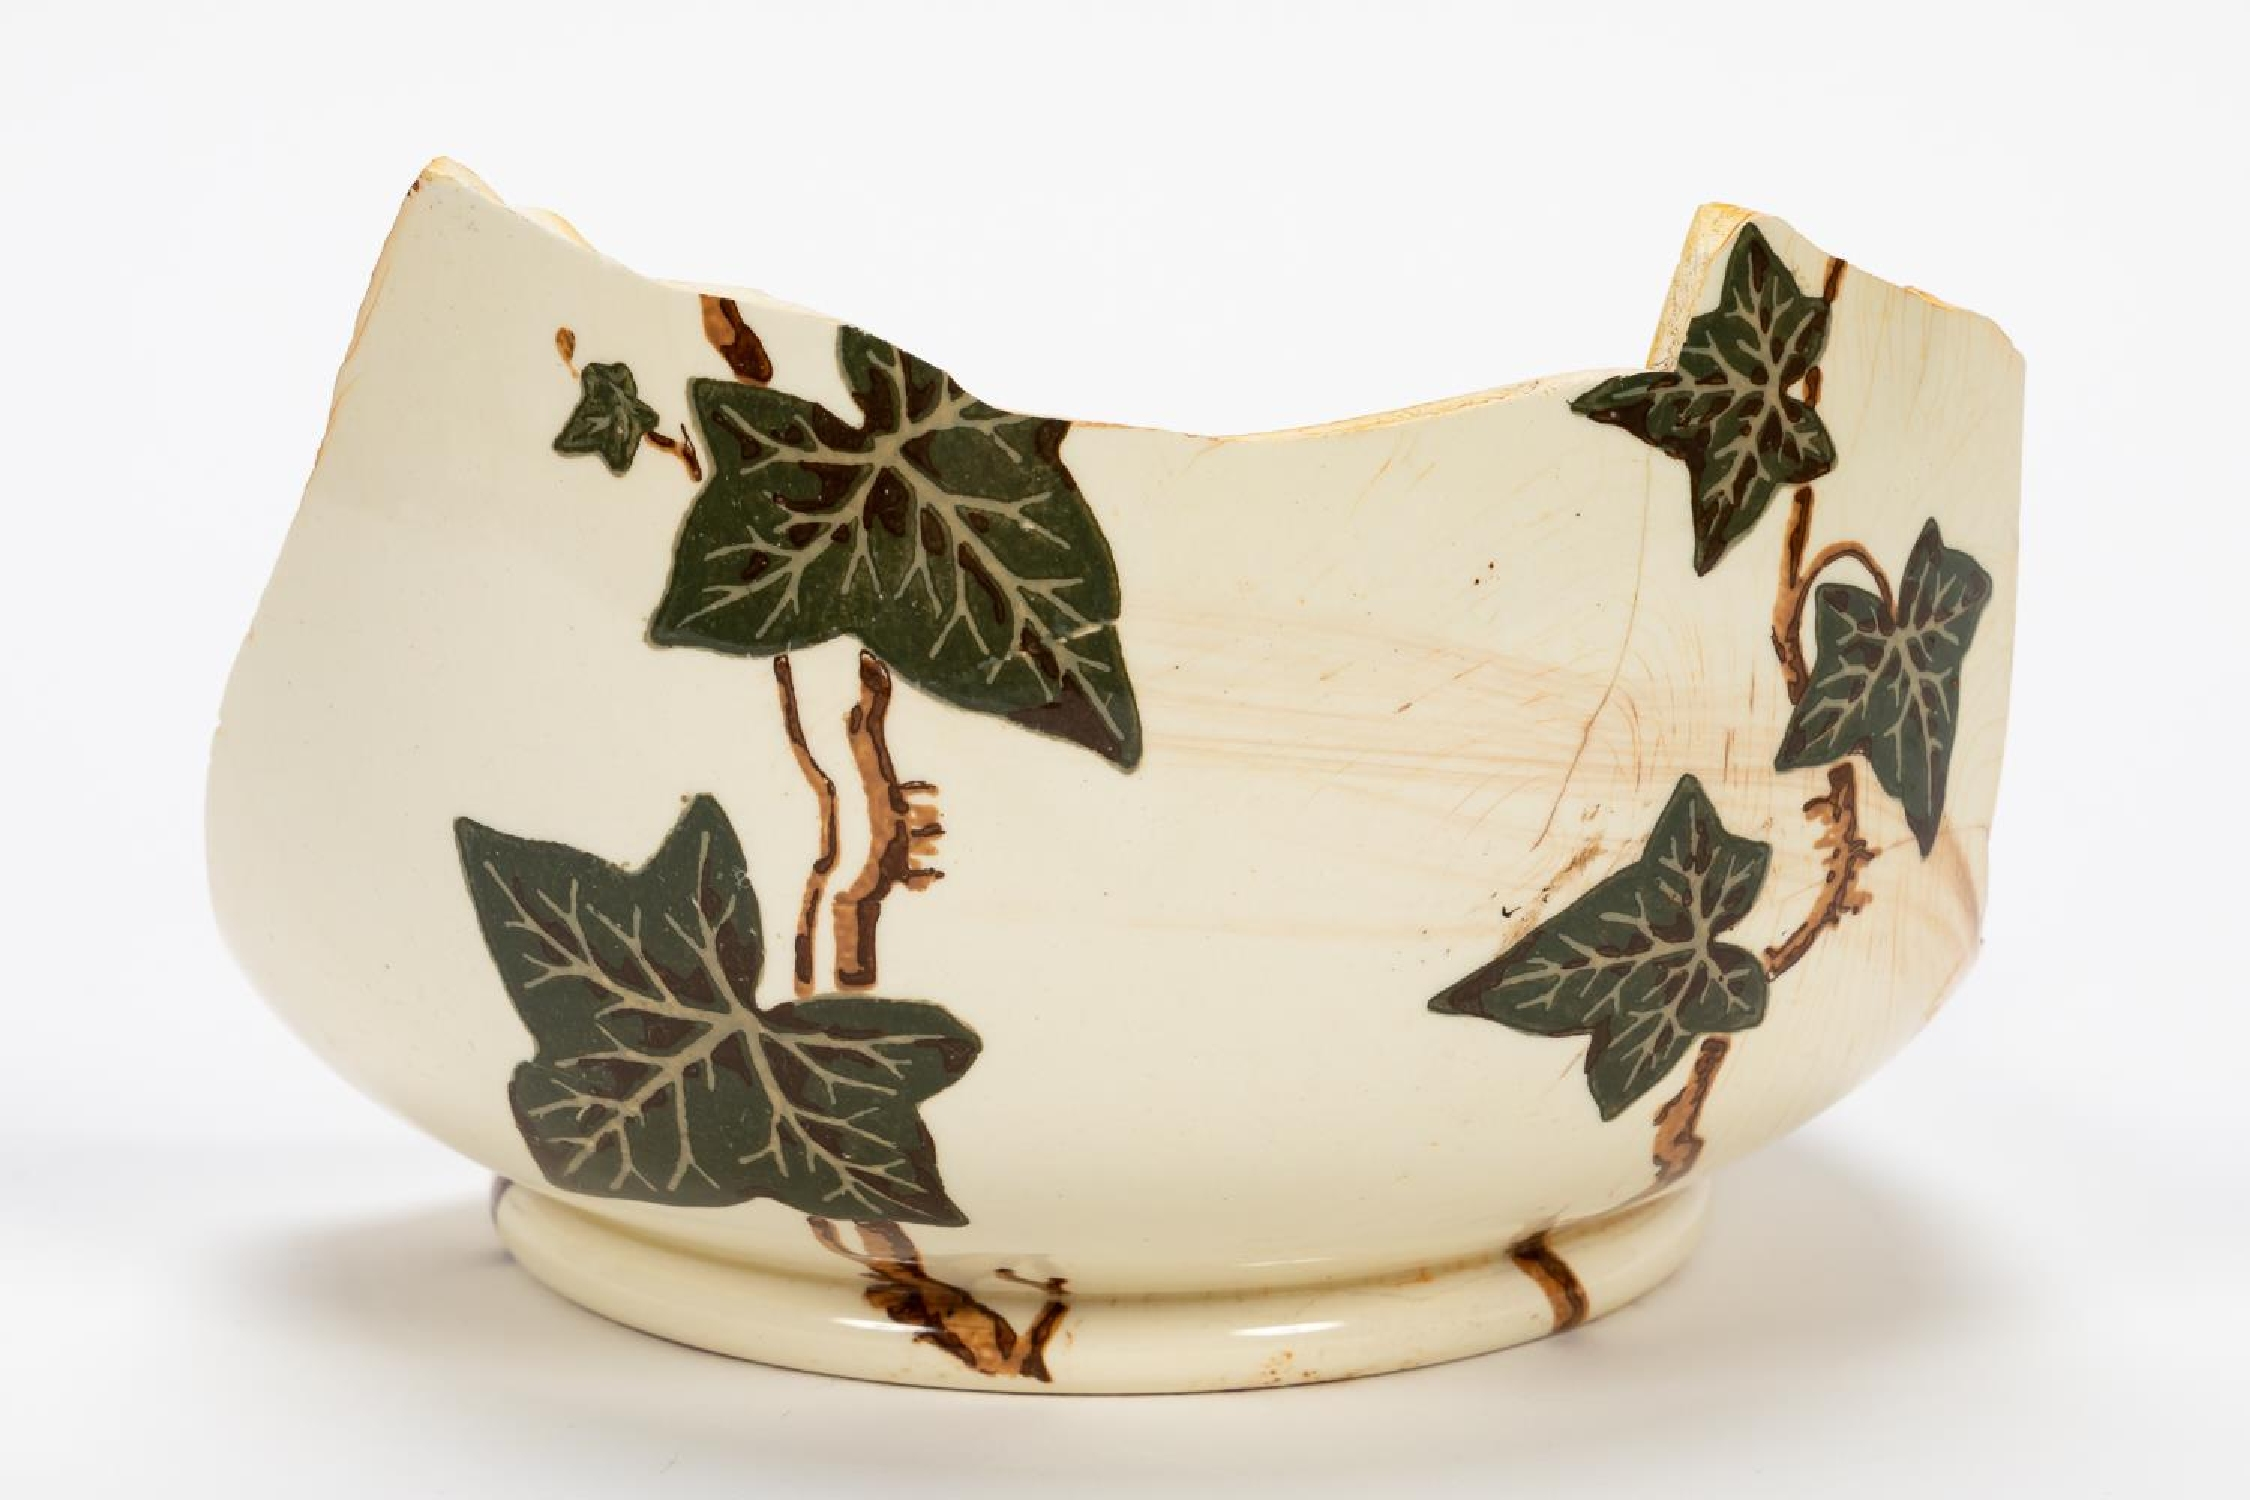 RMS CARPATHIA, SALVAGED PARTIAL IVY CHAMBER POT - Image 2 of 7